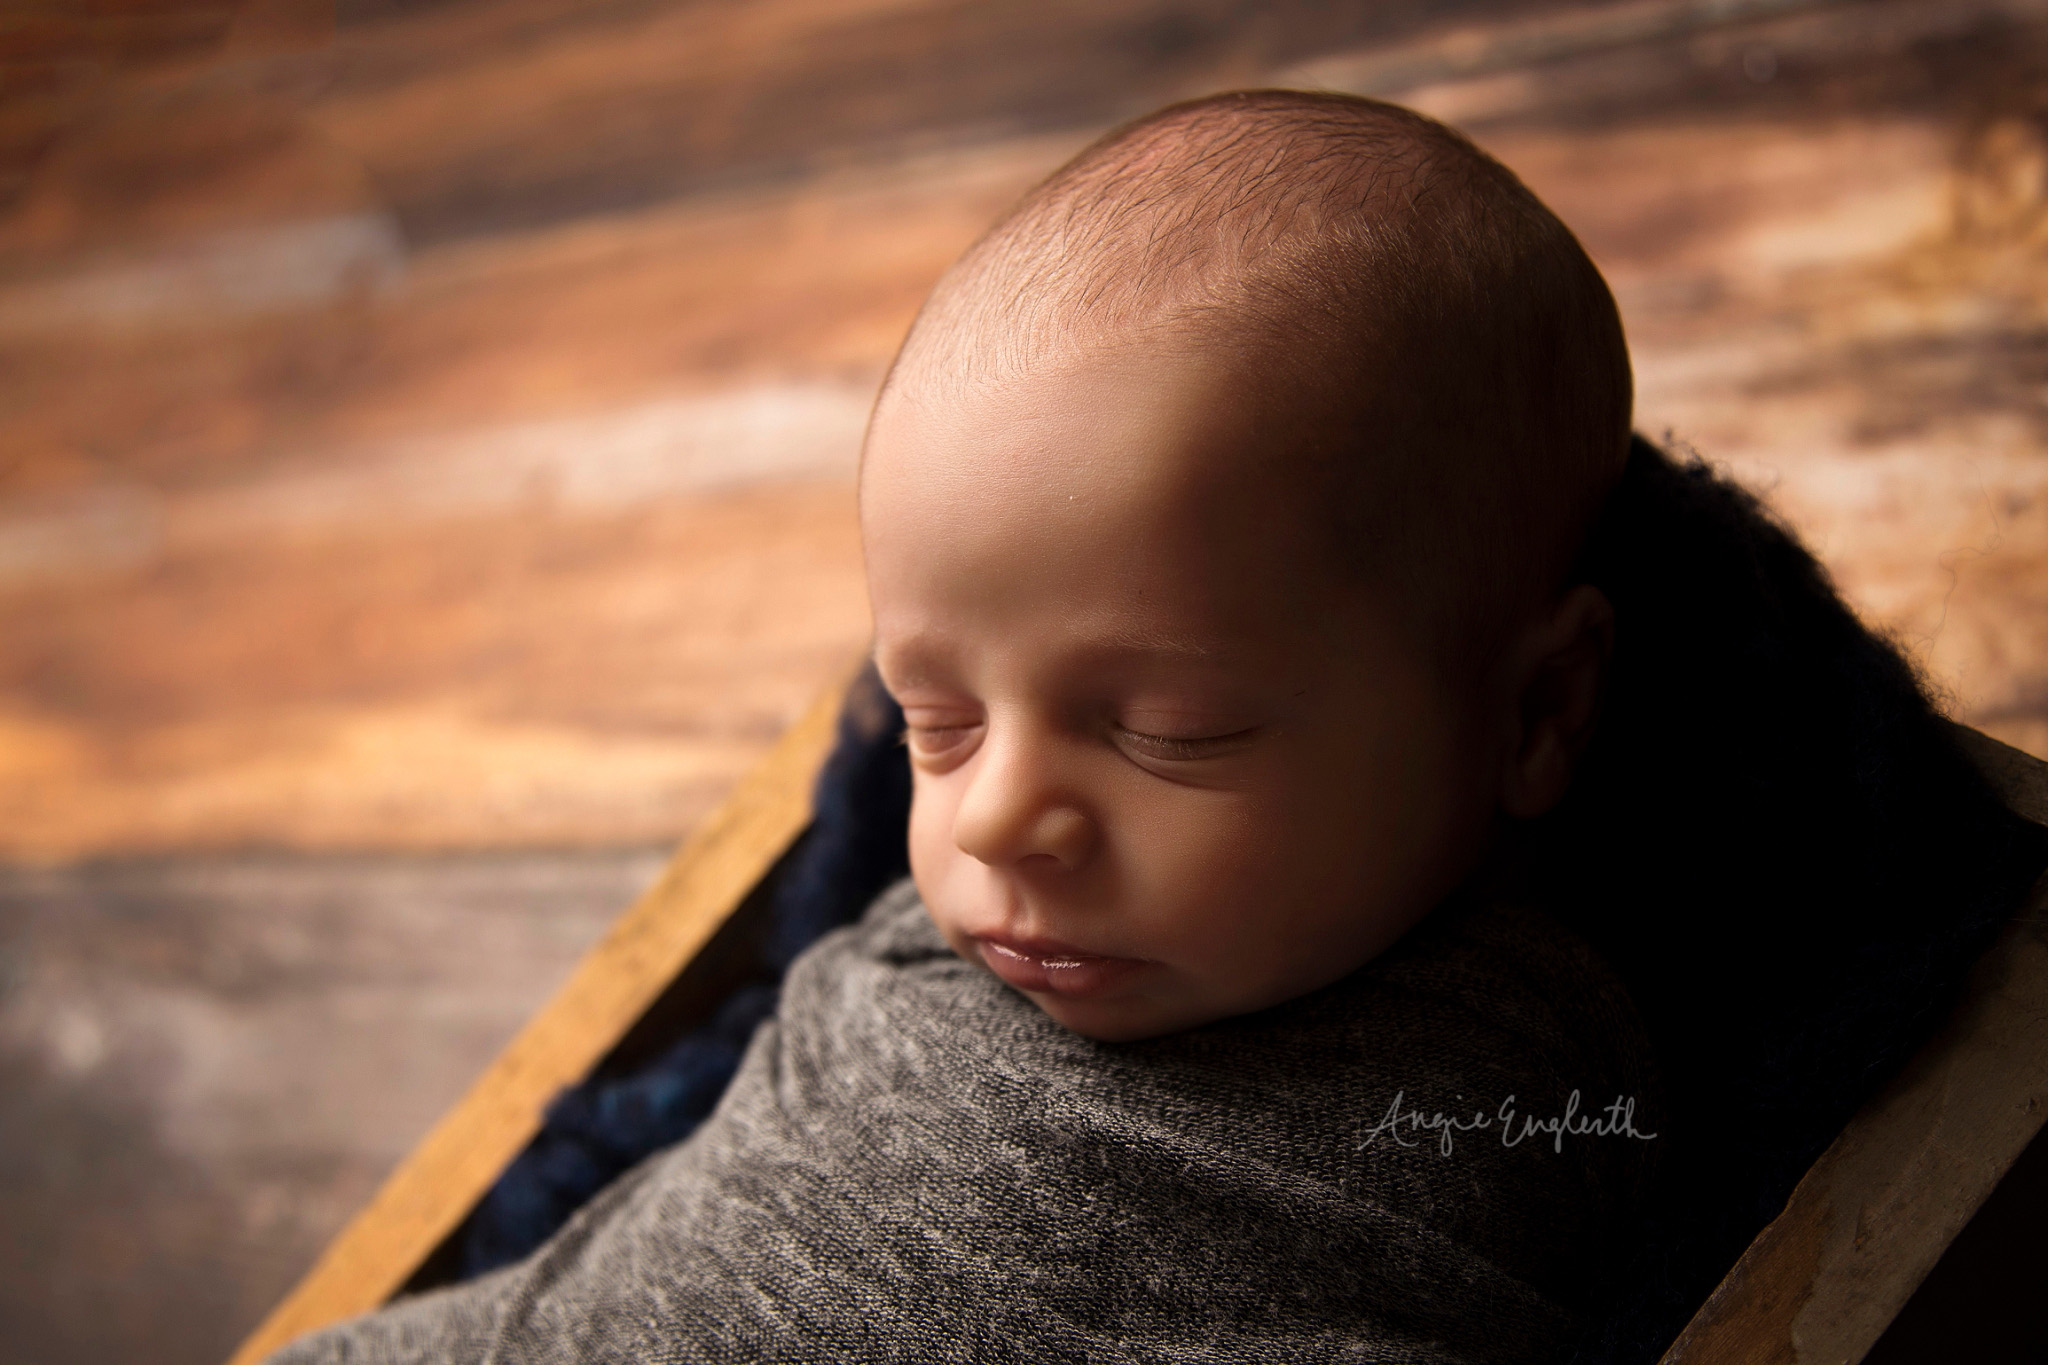 Lancaster_maternity_and_newborn_photographer_angie_englerth_011.jpg